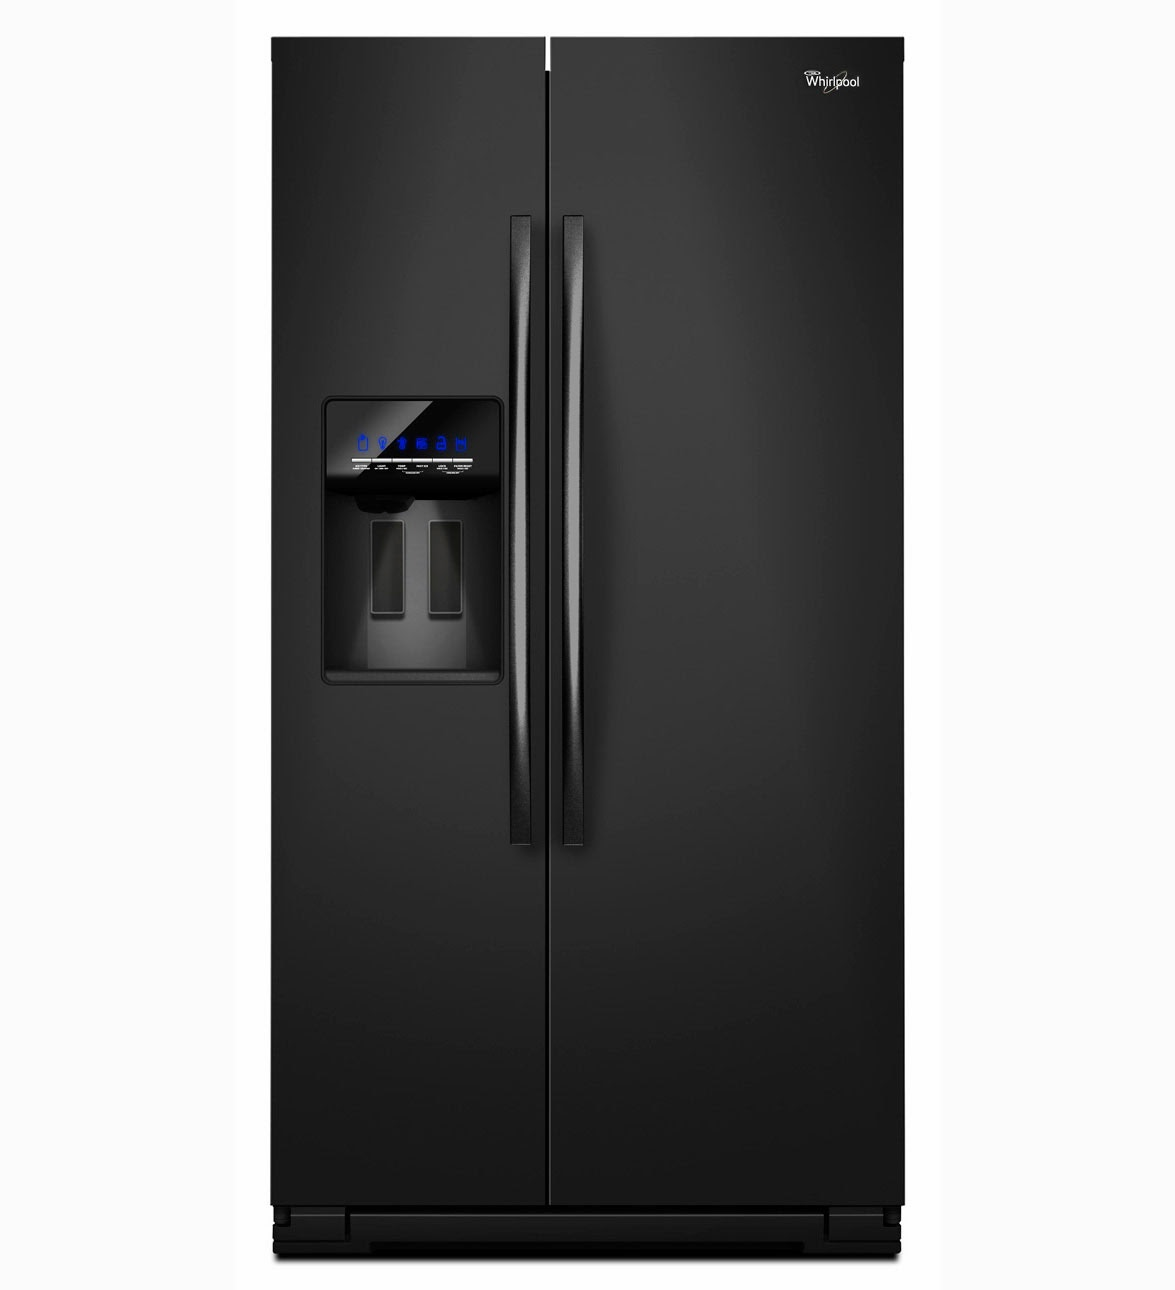 whirlpool refrigerator brand wsf26c2exb side by side refrigerator. Black Bedroom Furniture Sets. Home Design Ideas